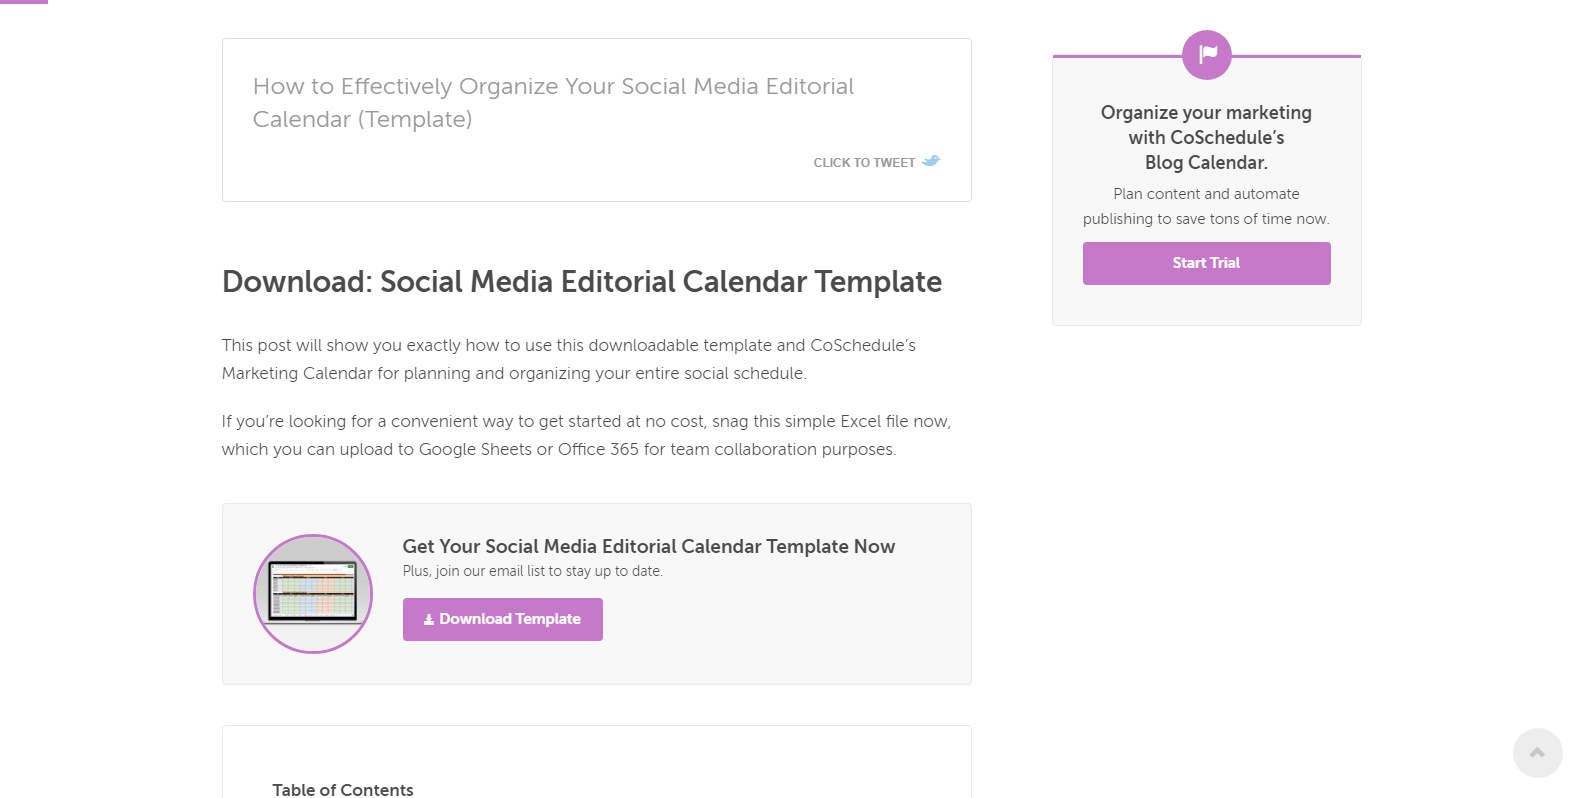 Social media editorial calendar lead magnet